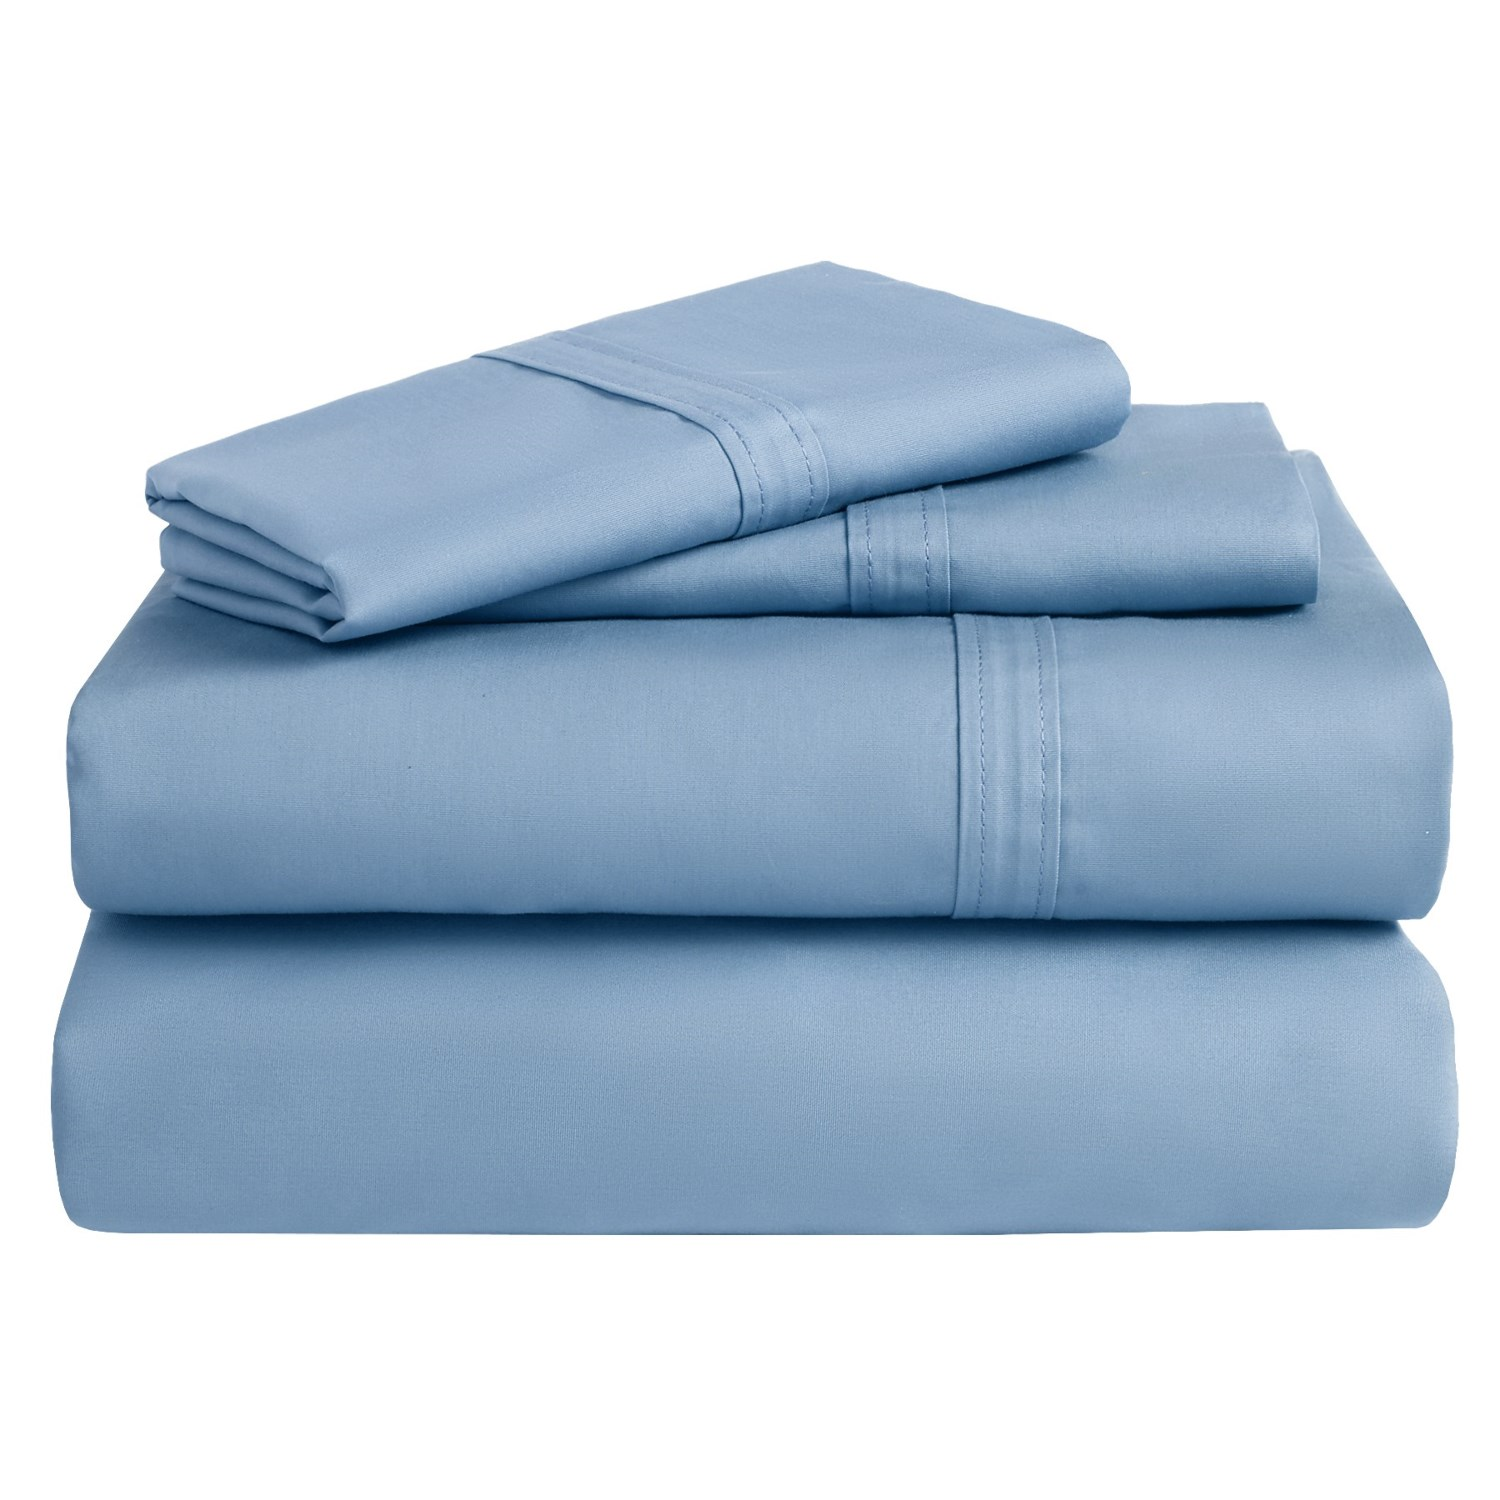 Creative cotton percale sheets with Amazing Combine Color Sheets Ideas